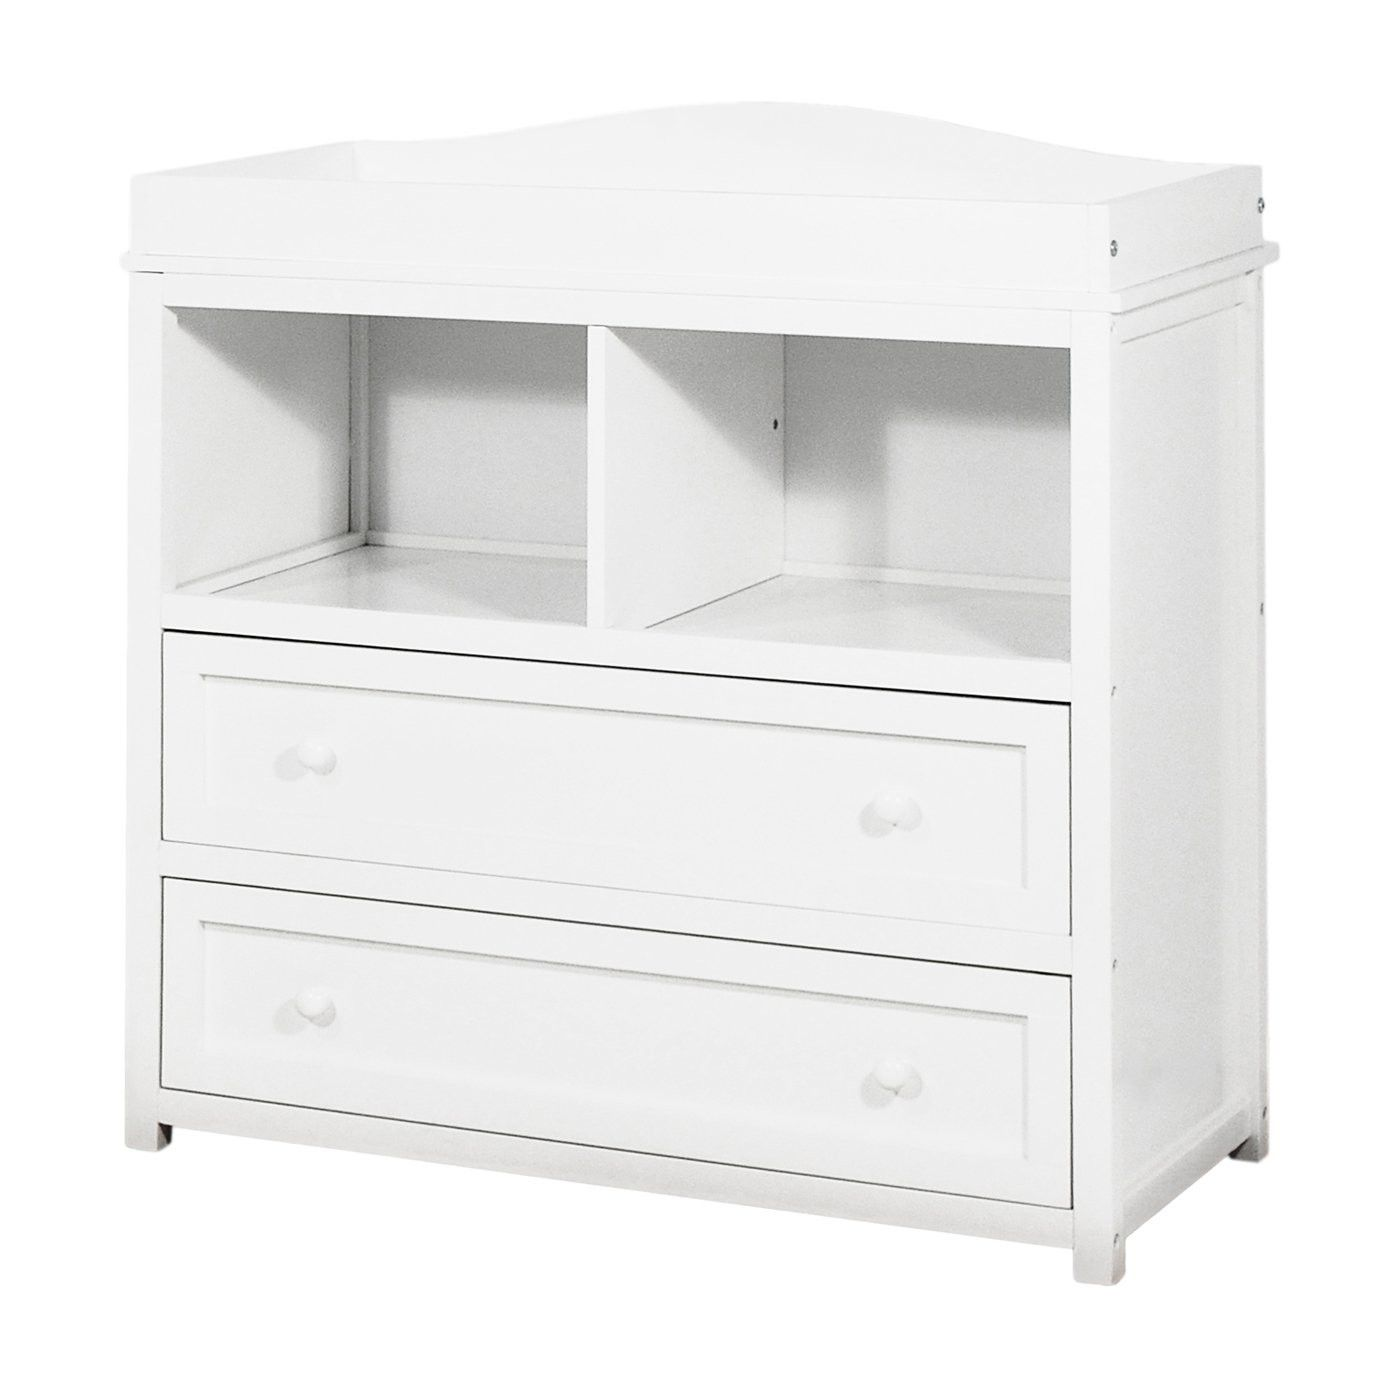 AFG Leila 2 Changing Table - 008 | Muebles para dormitorio, Bebé y ...